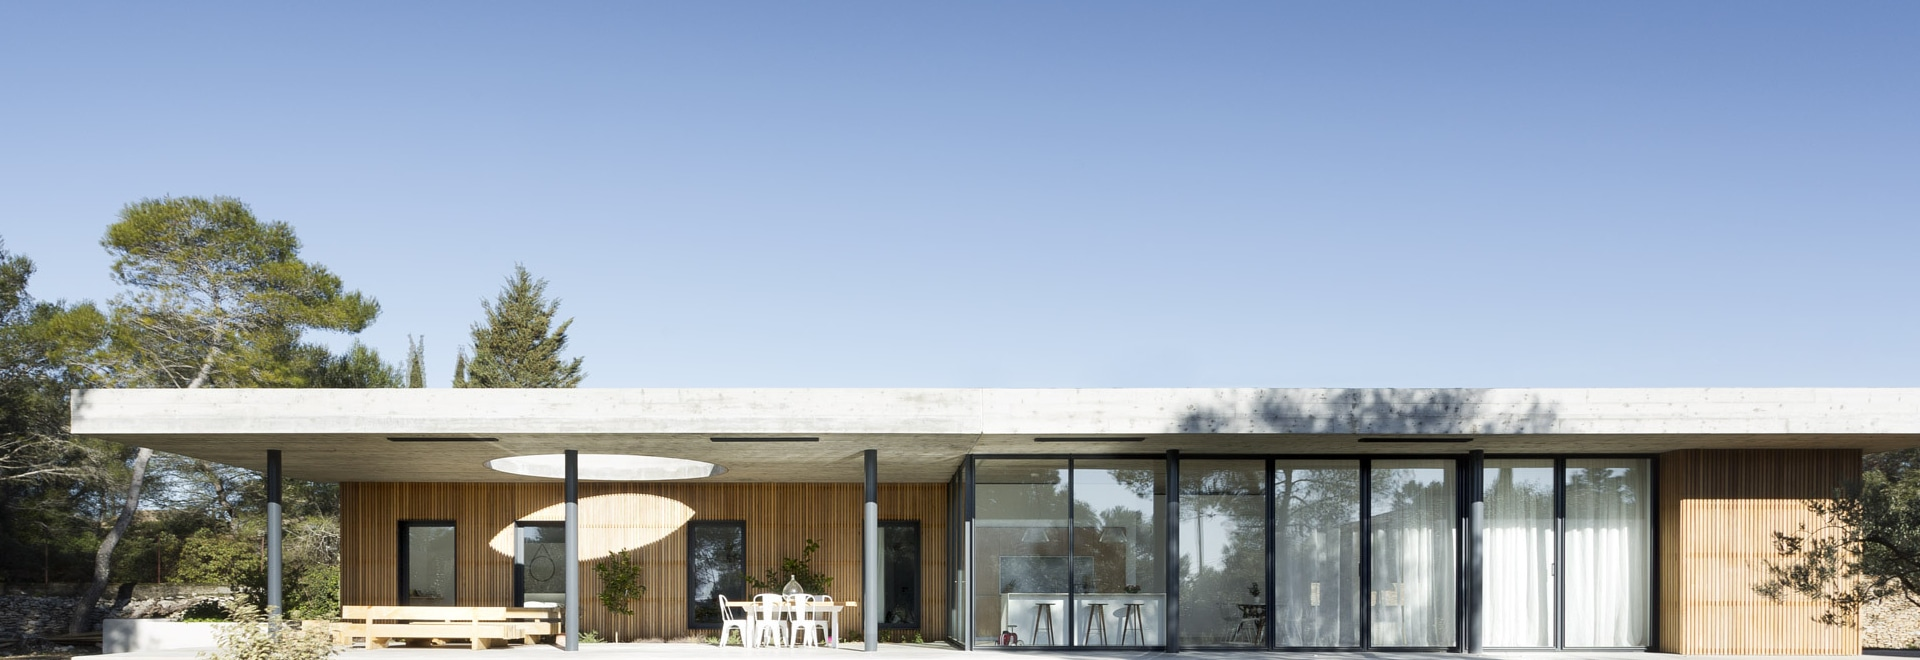 maison 0.82 is a modernist family villa in the south of france